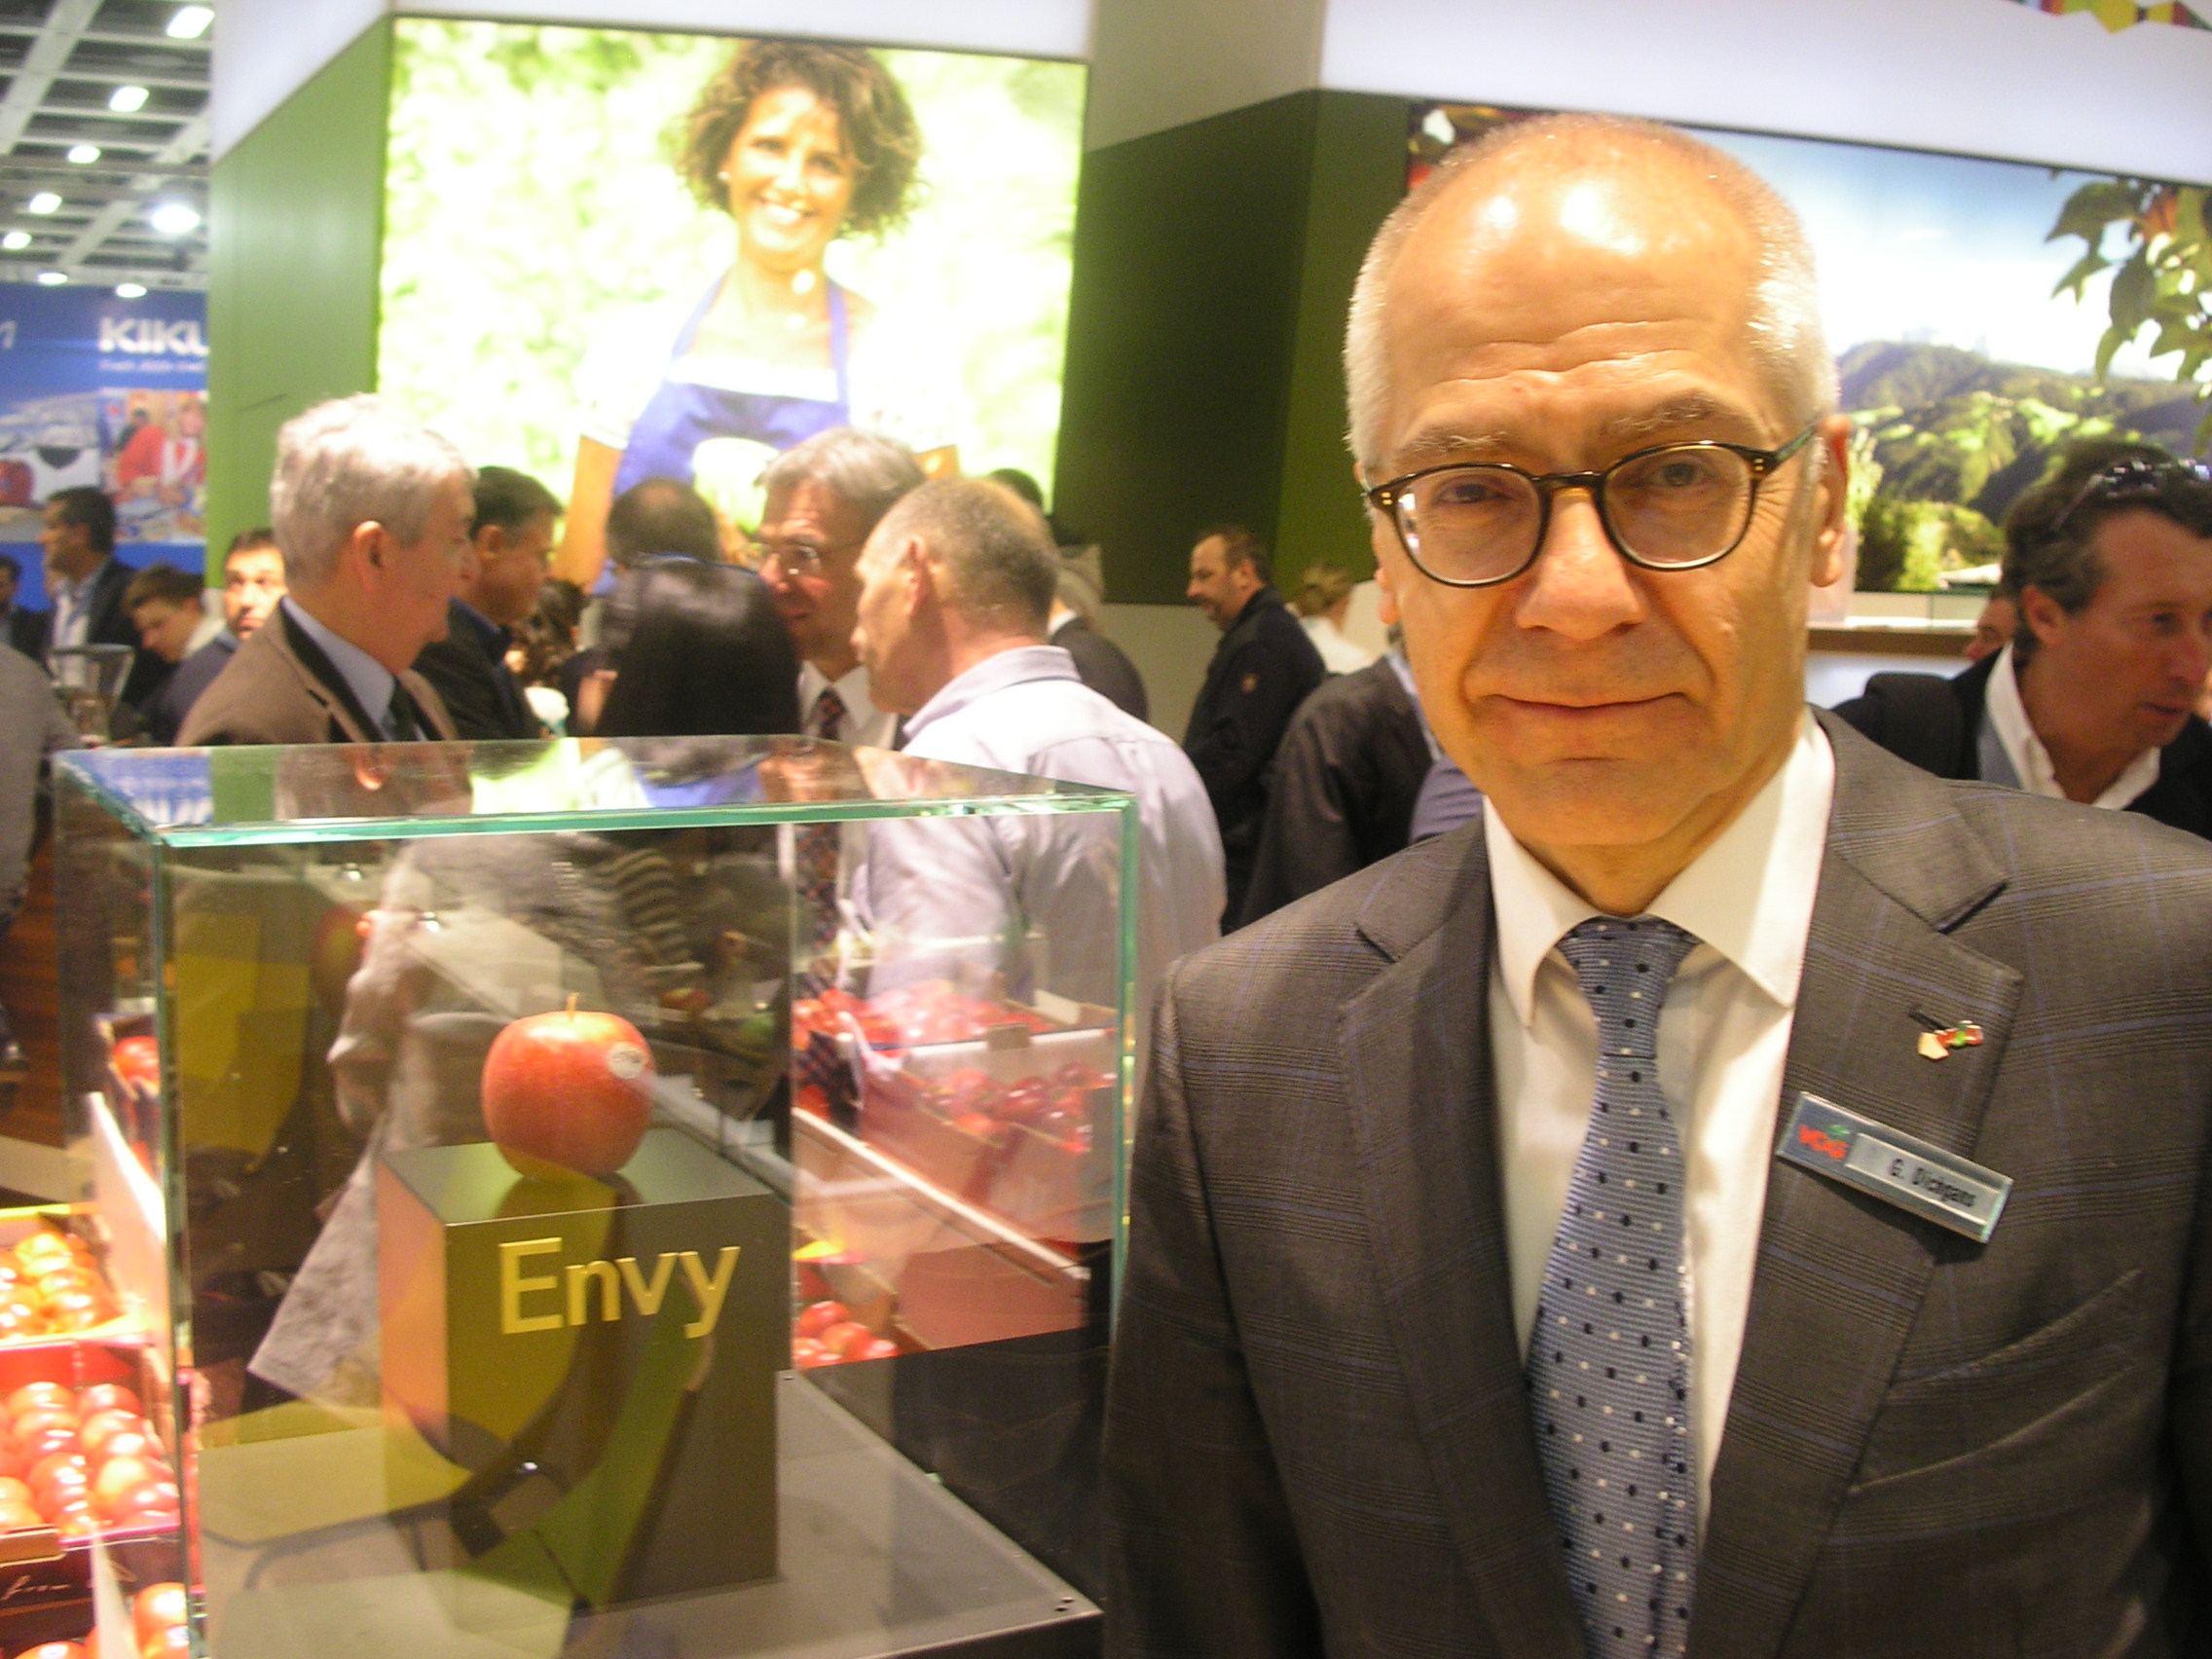 Thanks to an agreement signed with New Zealand's ENZA, the distributor and holder of the trademark rights, VOG is Italy's exclusive producer of the Envy apple, together with the second project partner in Alto Adige, the VI.P. Consortium.